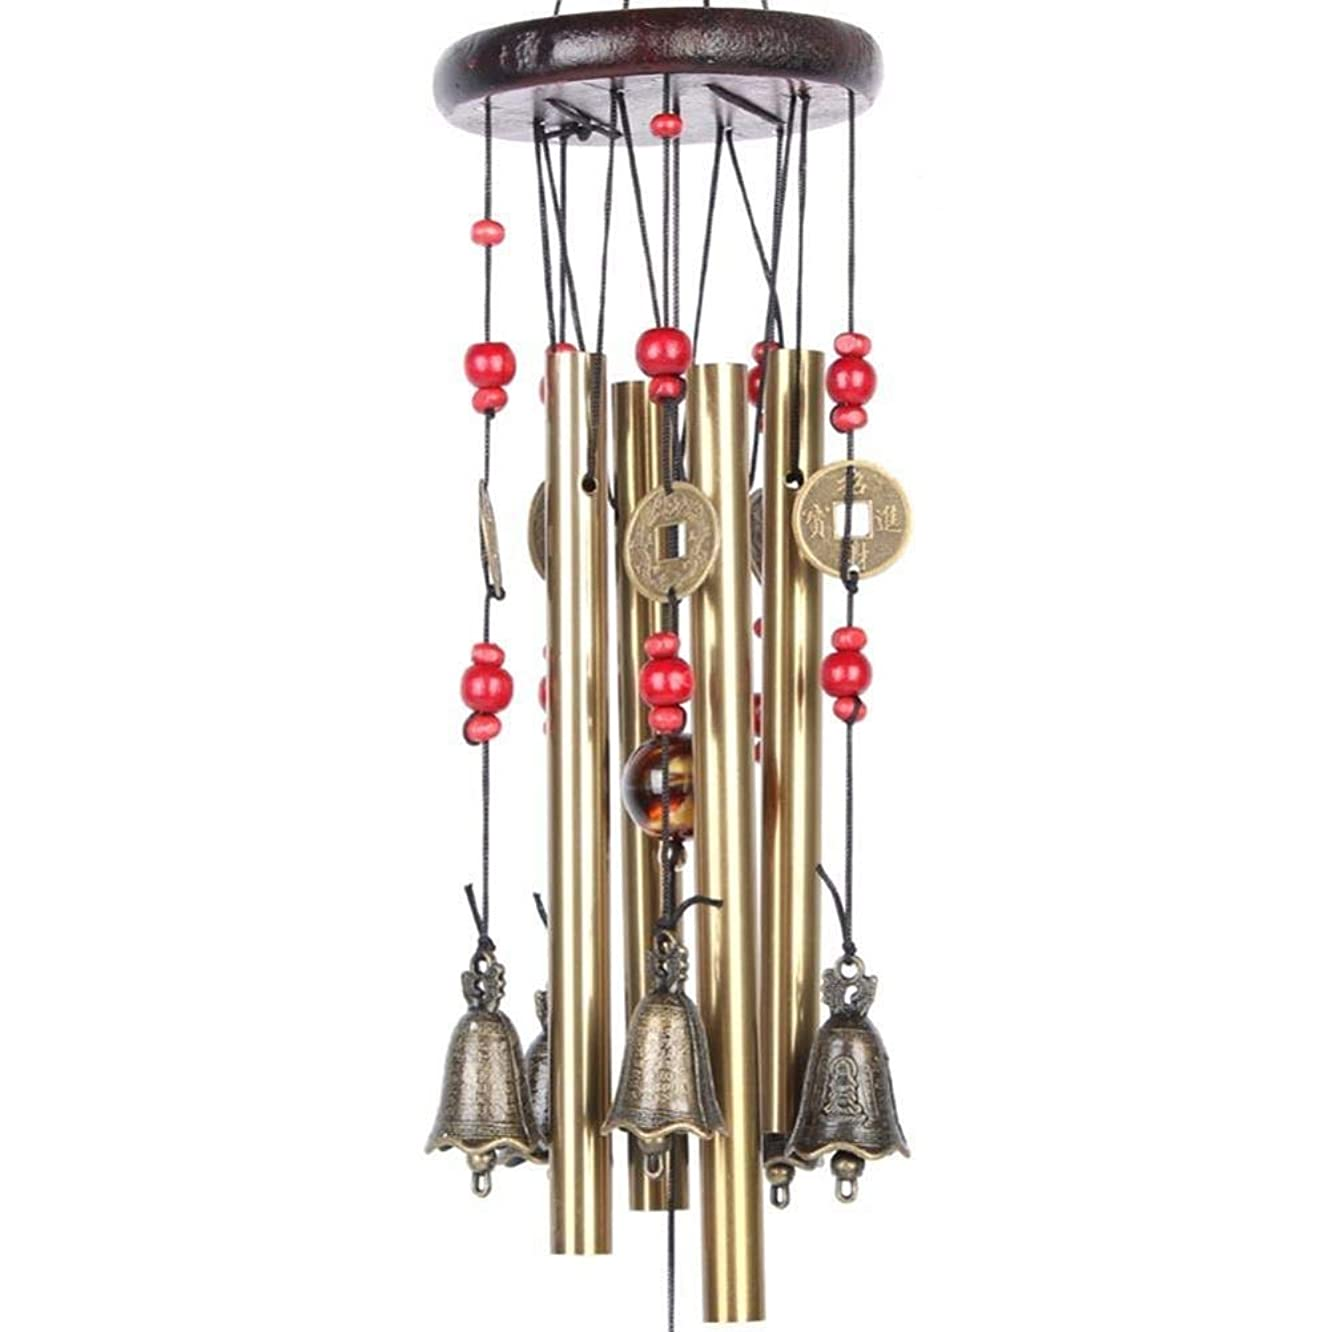 Wind Chimes - Bell Copper Tubes Outdoor Yard Garden Decor Windbell Ornament